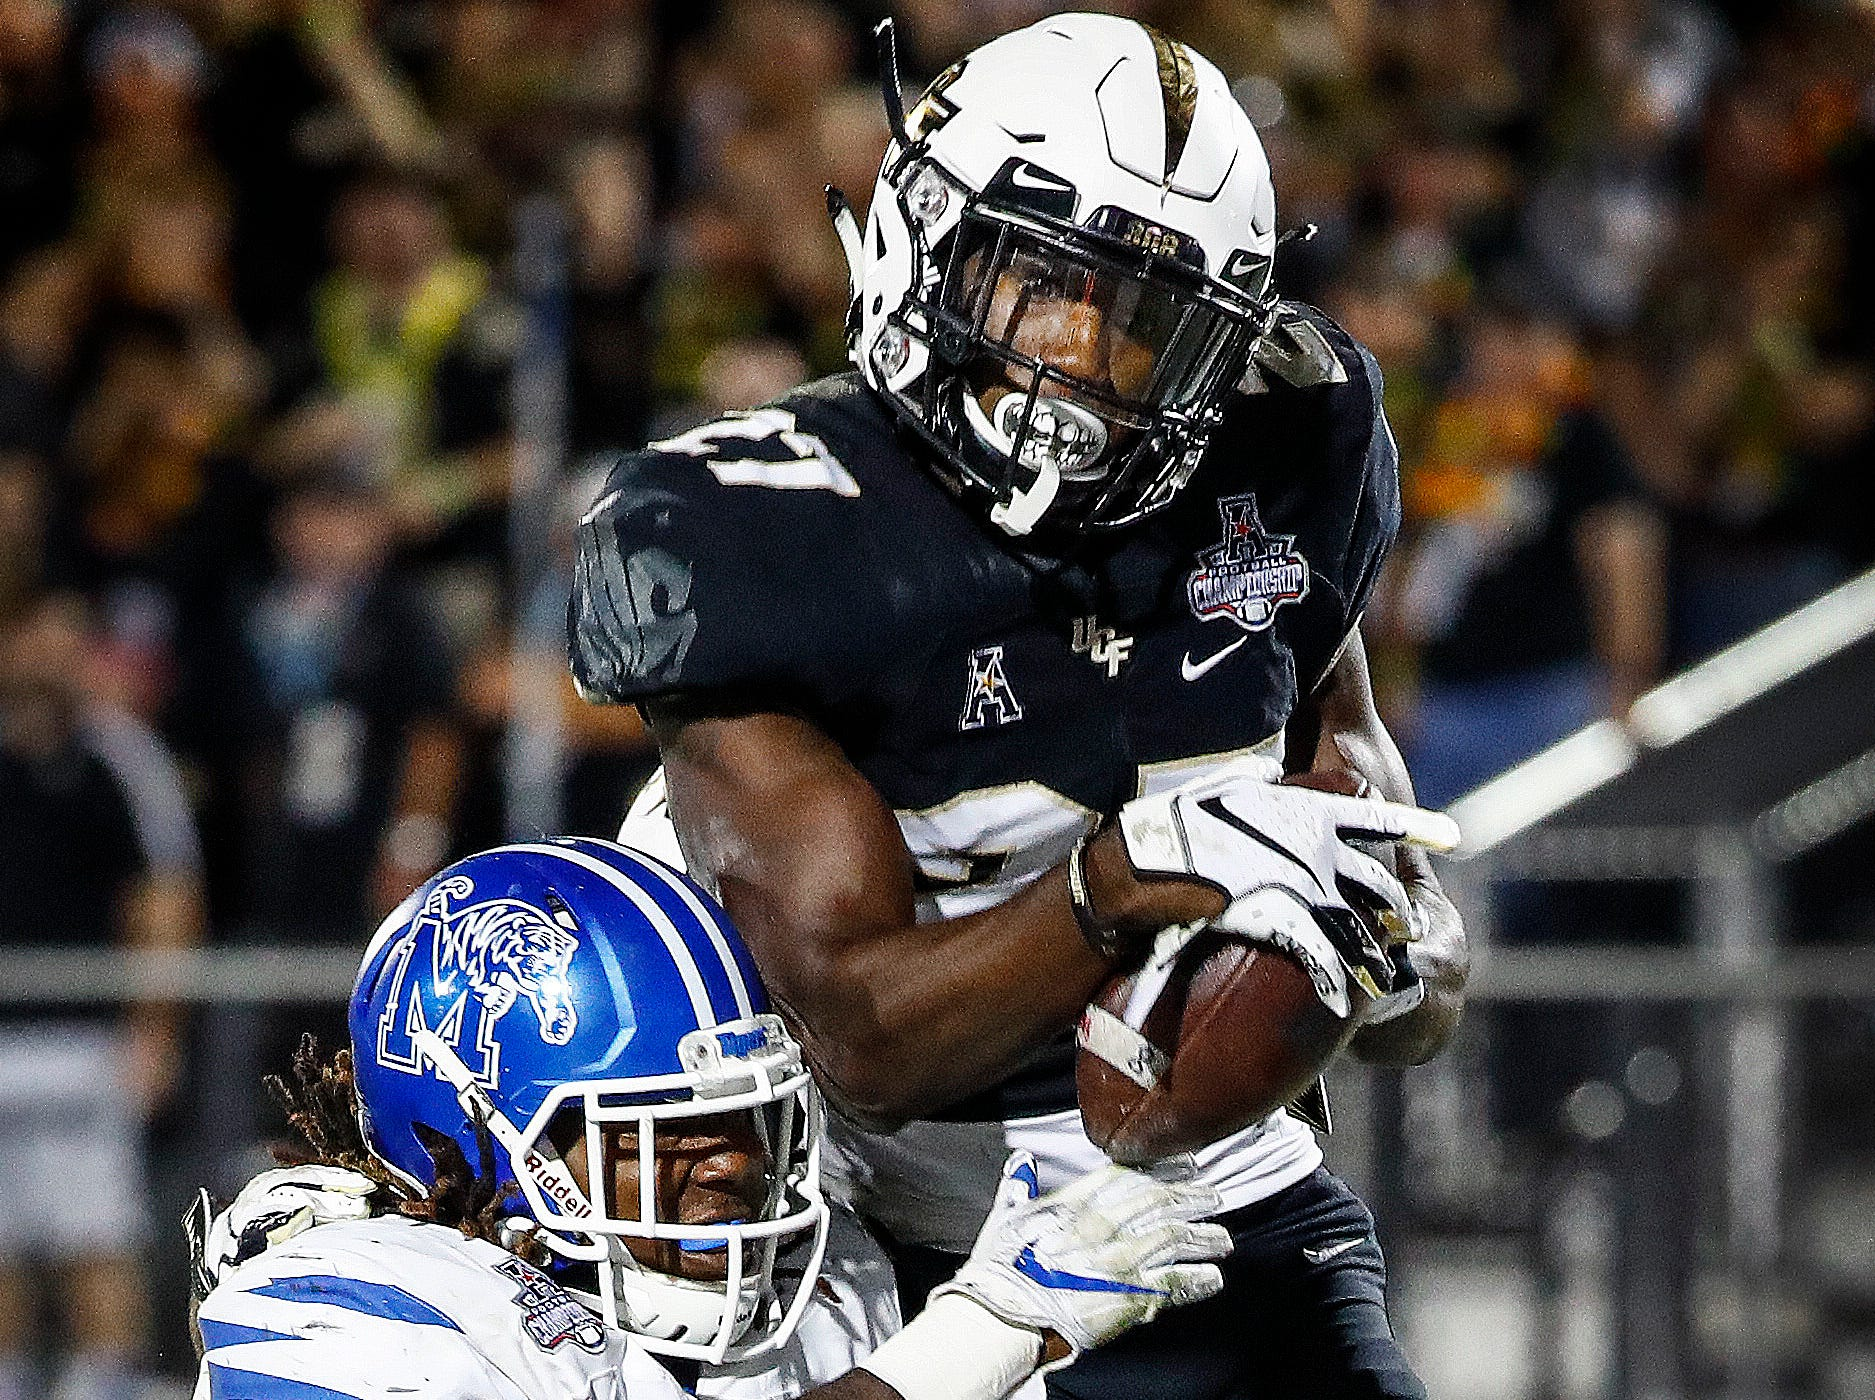 Memphis running back Darrell Henderson (left) can not stop UCF defender Richie Grant (right) from snagging an interception in the end zone to give the Knights a 56-41 viceroy in the AAC Championship Football game Saturday, December 1, 2018 in Orlando.